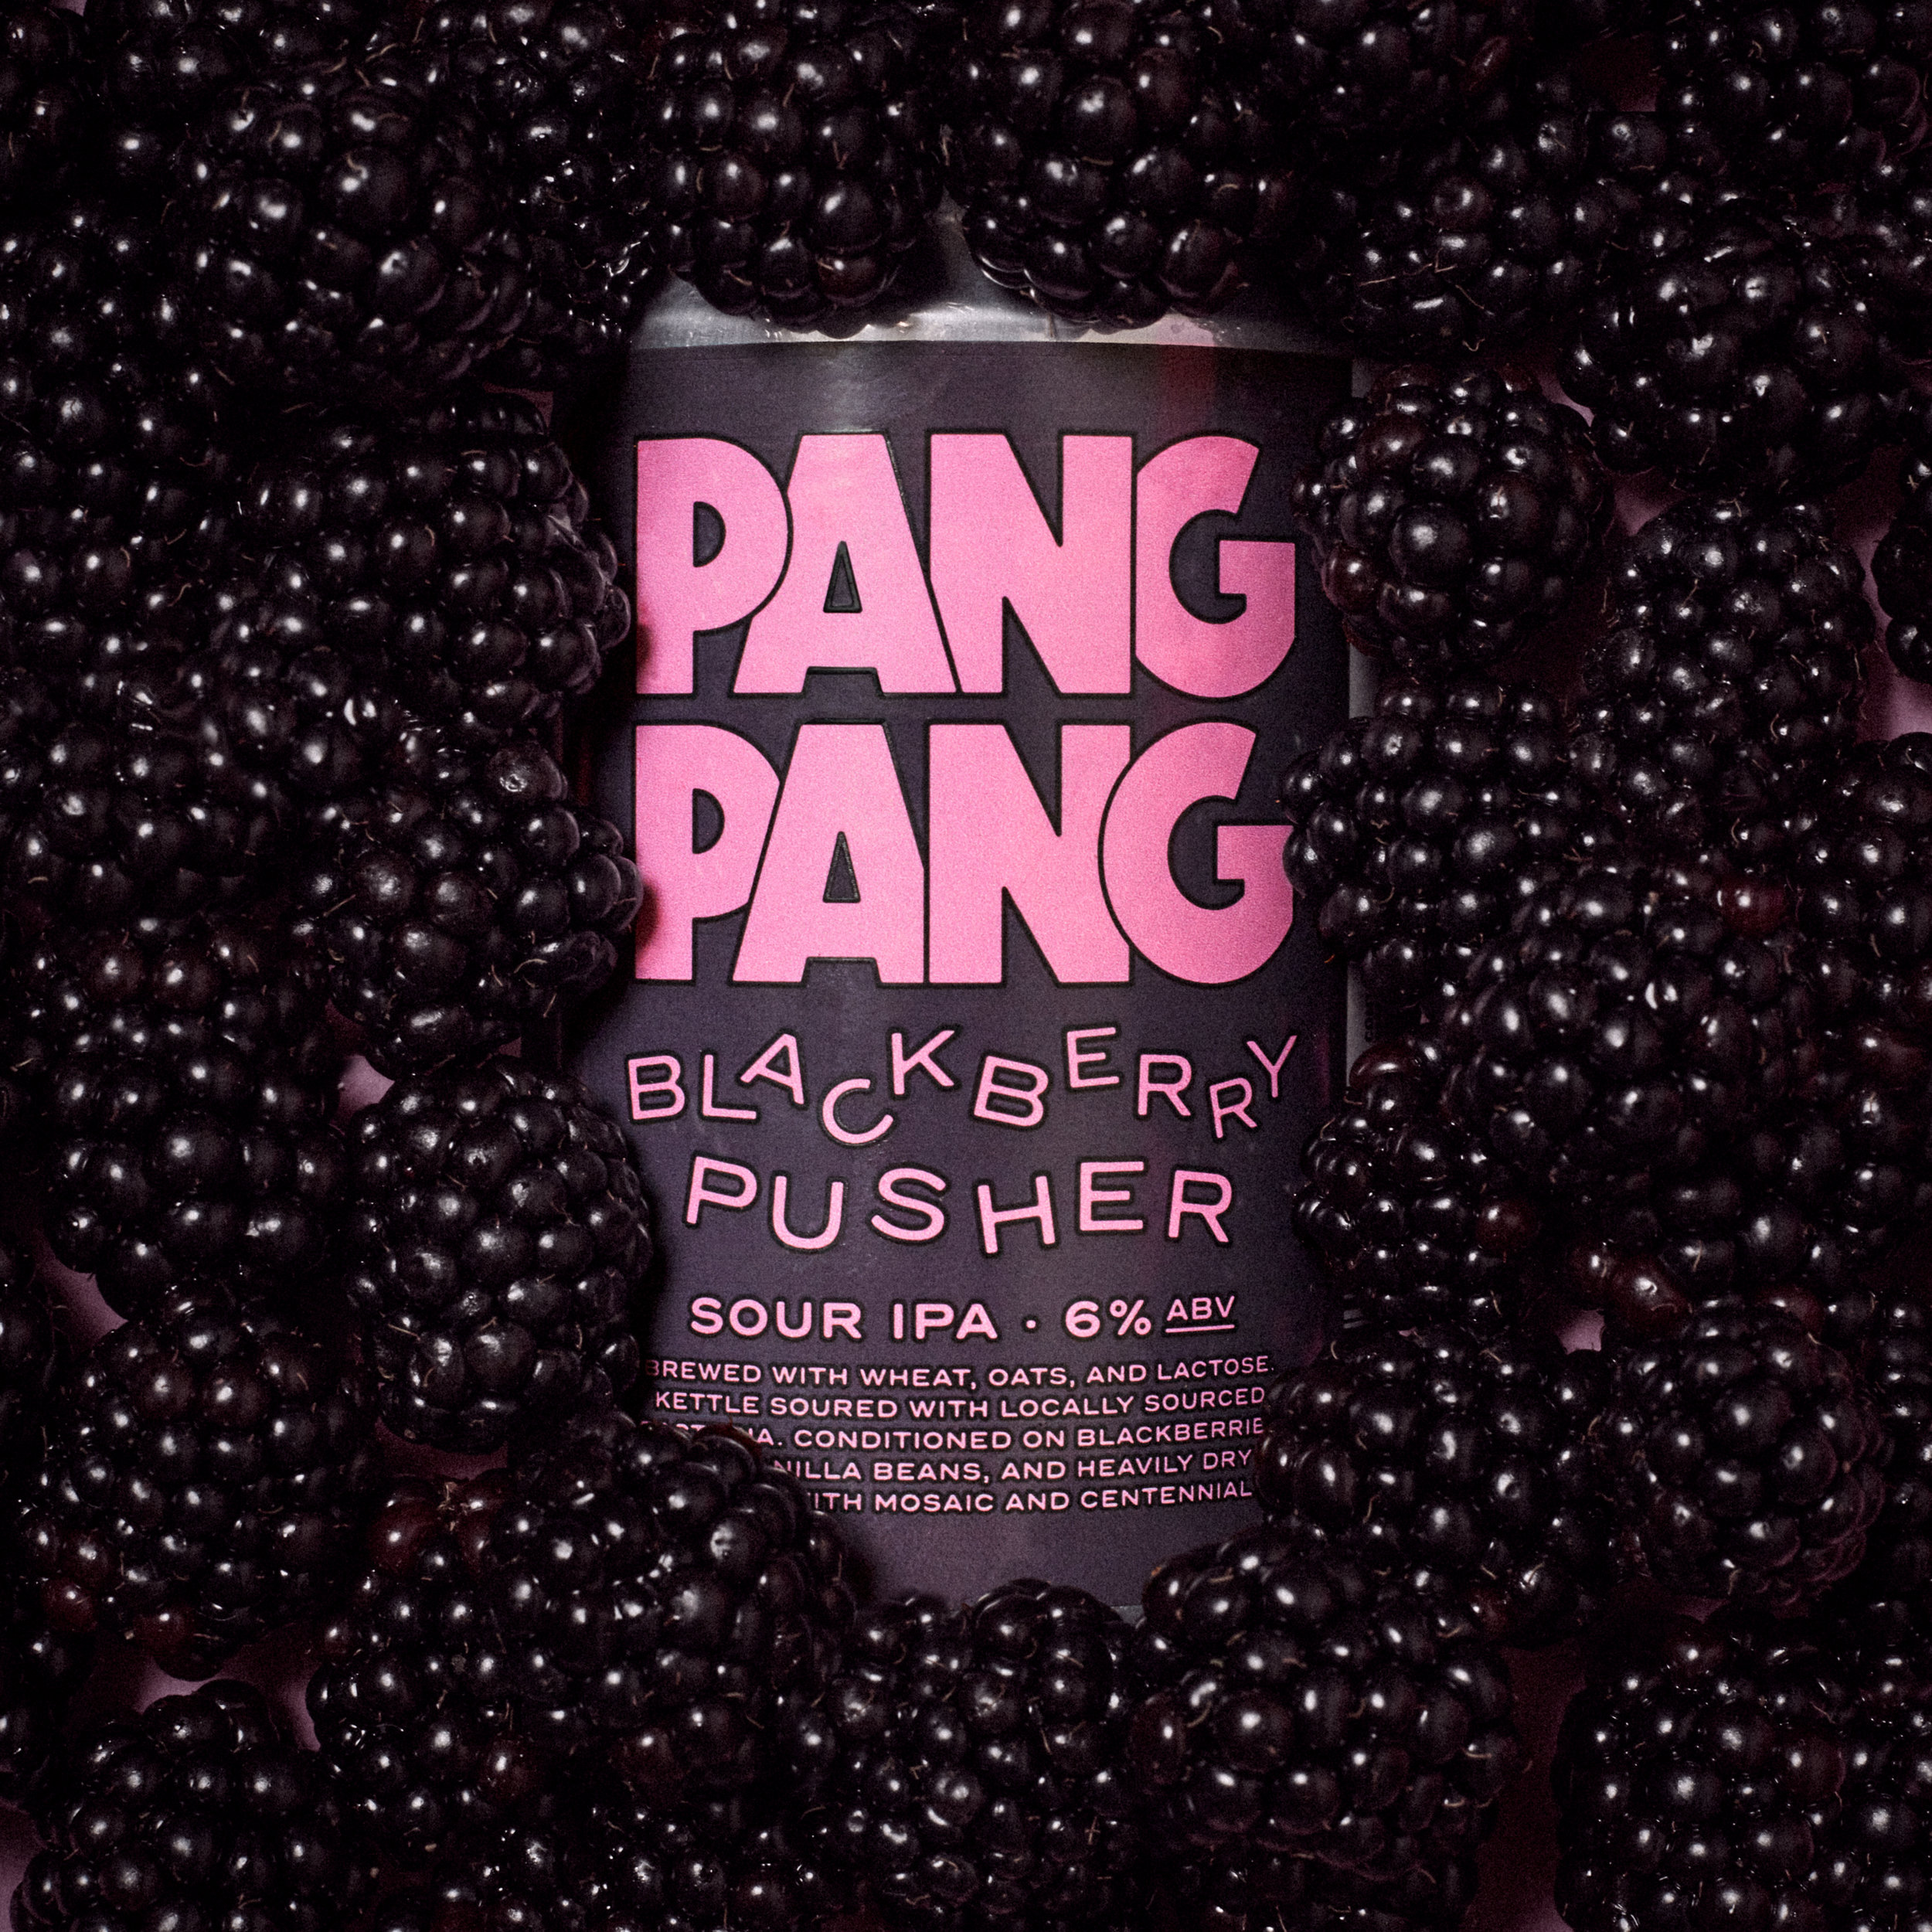 blackberry-pusher_bjornbarshav_01.jpg